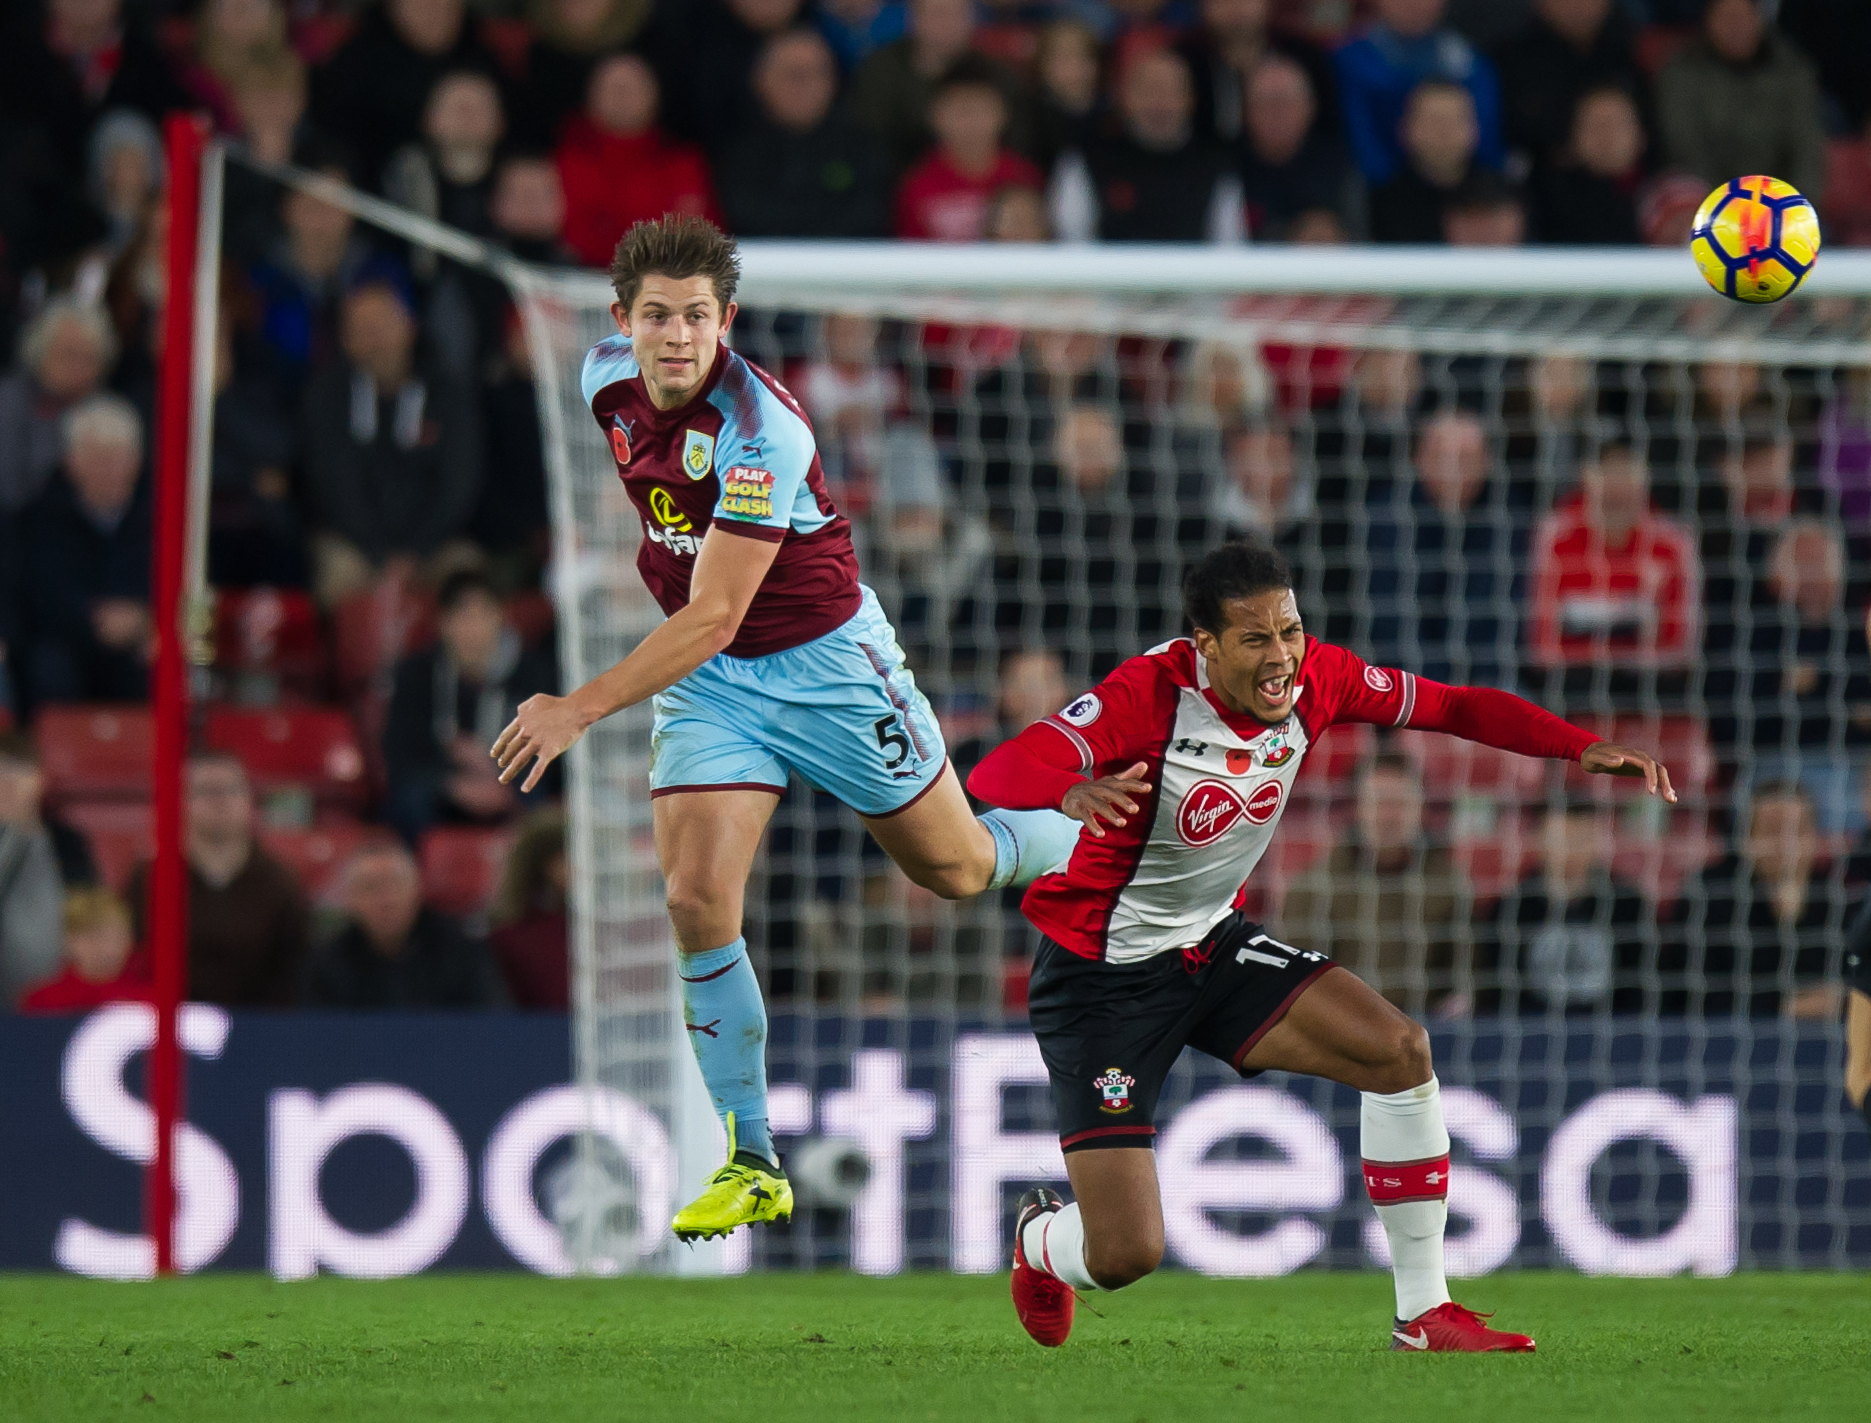 James Tarkowski has been in excellent form for Burnley this season